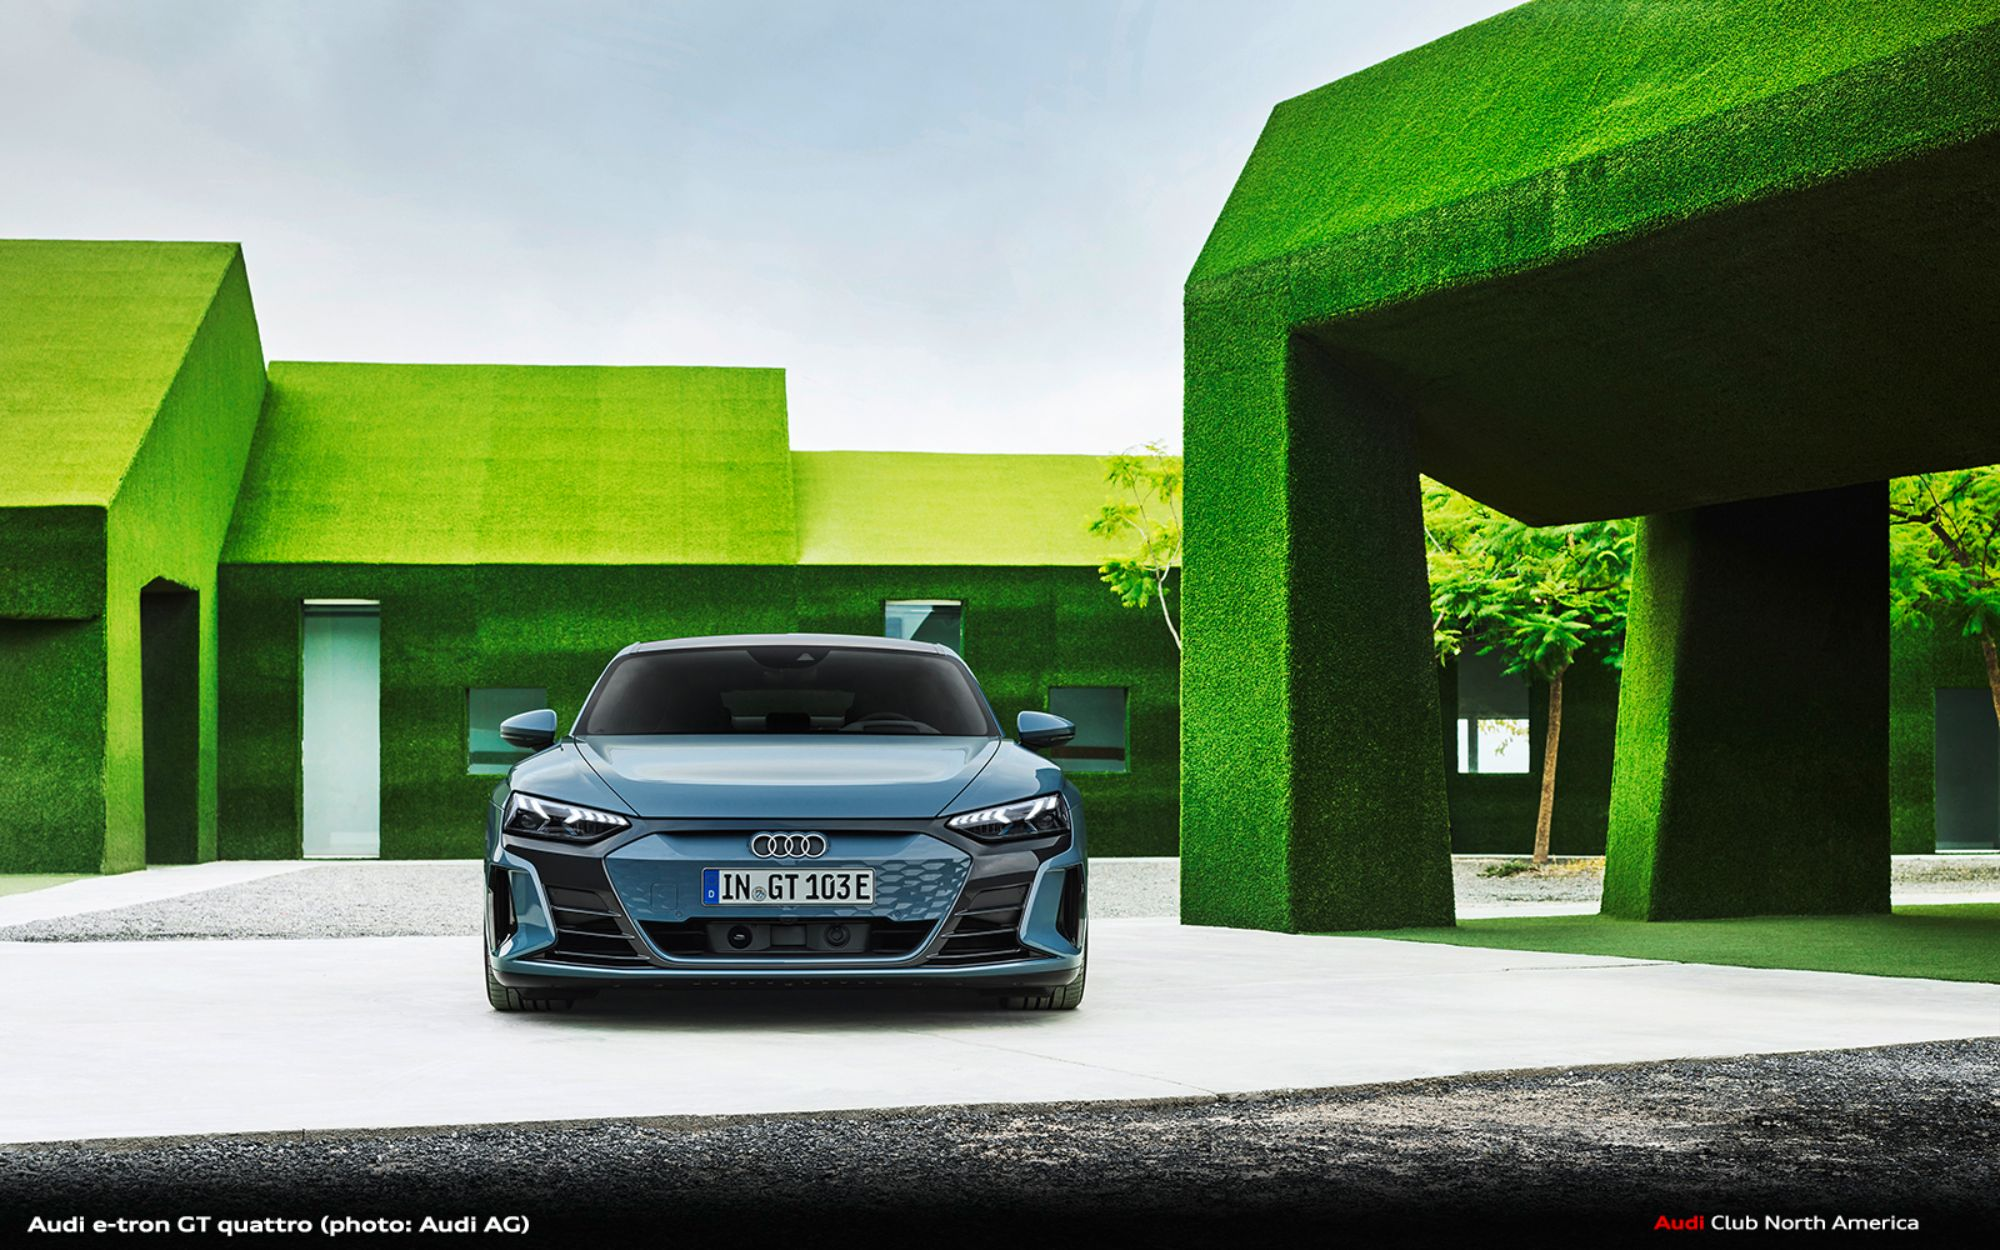 Audi Defies the Corona Crisis With a Robust Performance in the 2020 Financial Year